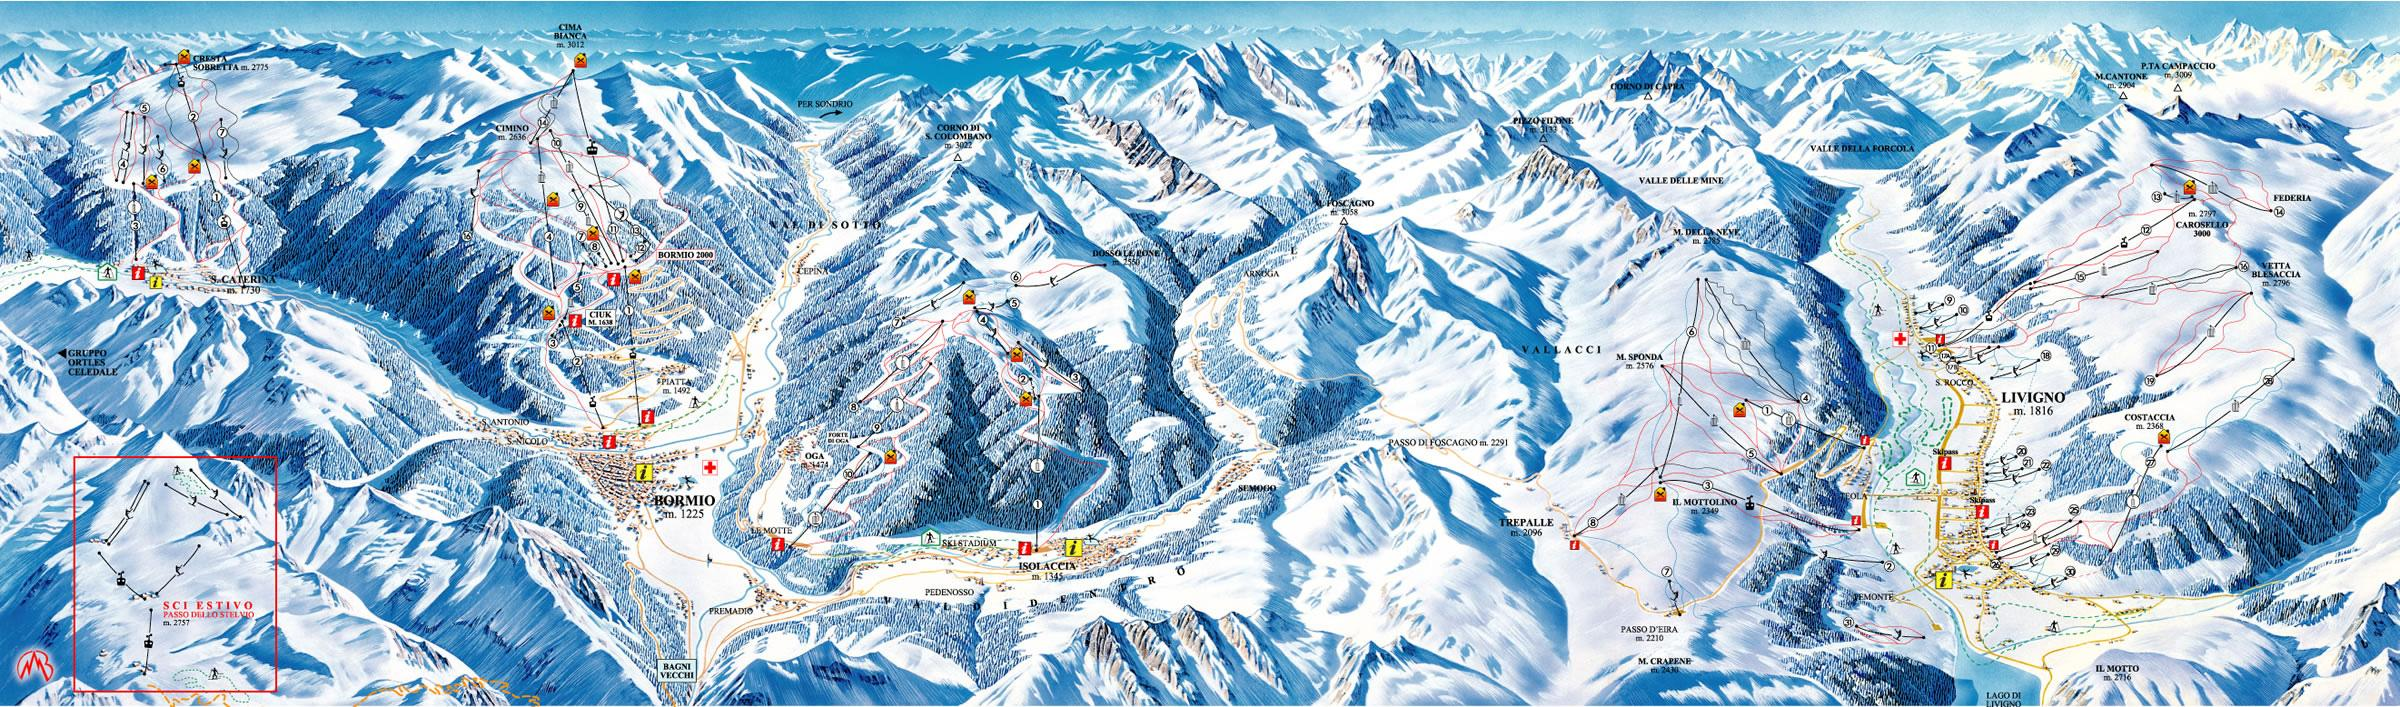 Alta-Valtellina-Piste-Map-Large